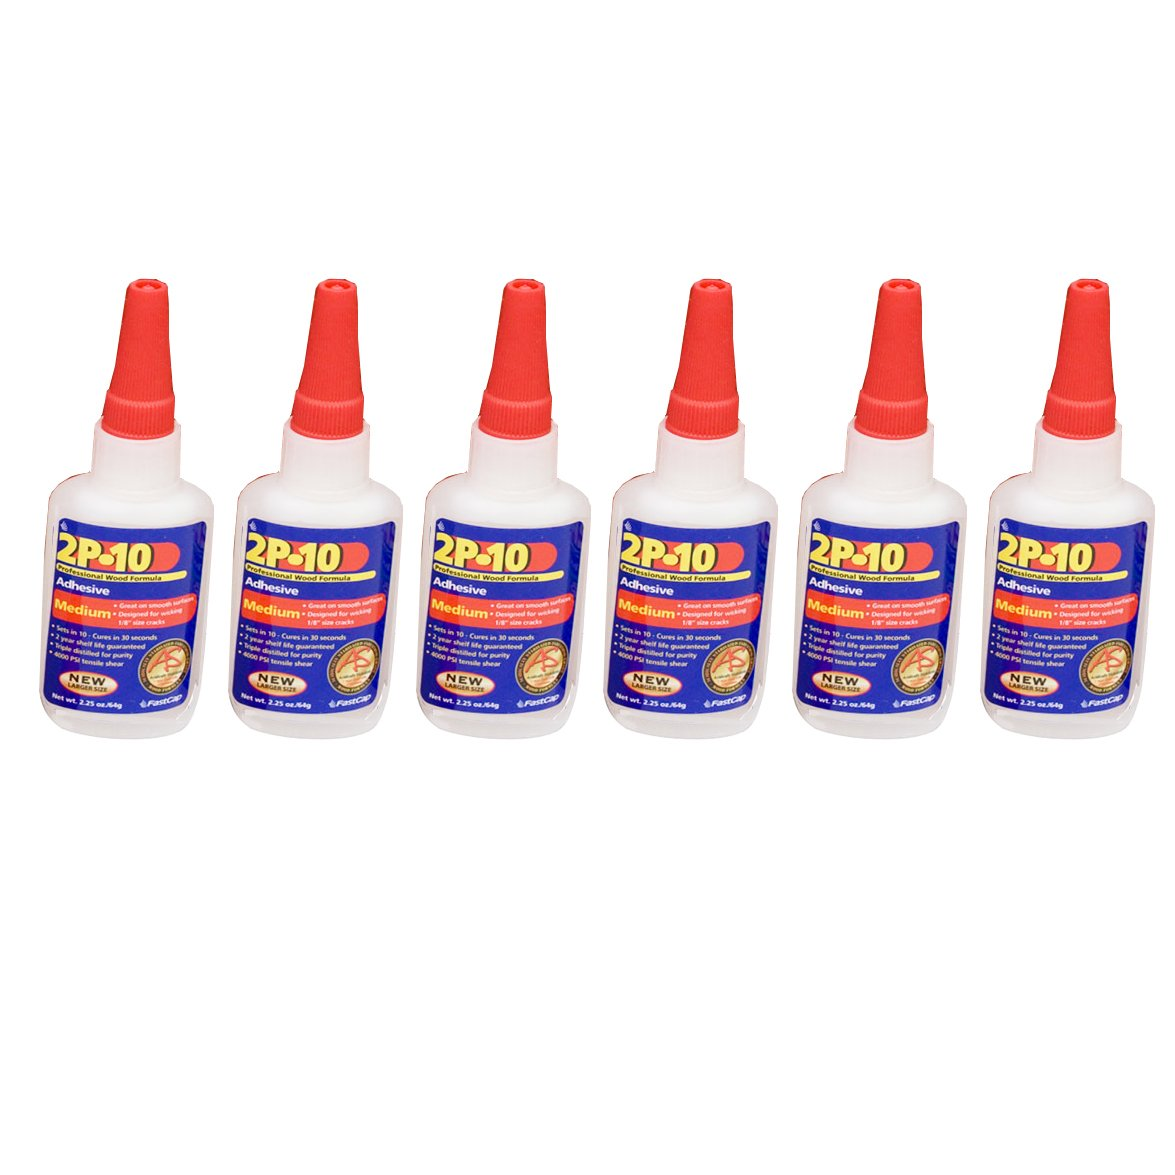 FastCap 2P-10 Professional 2 Oz Medium Super Glue Adhesive Bottles, 6-Pack